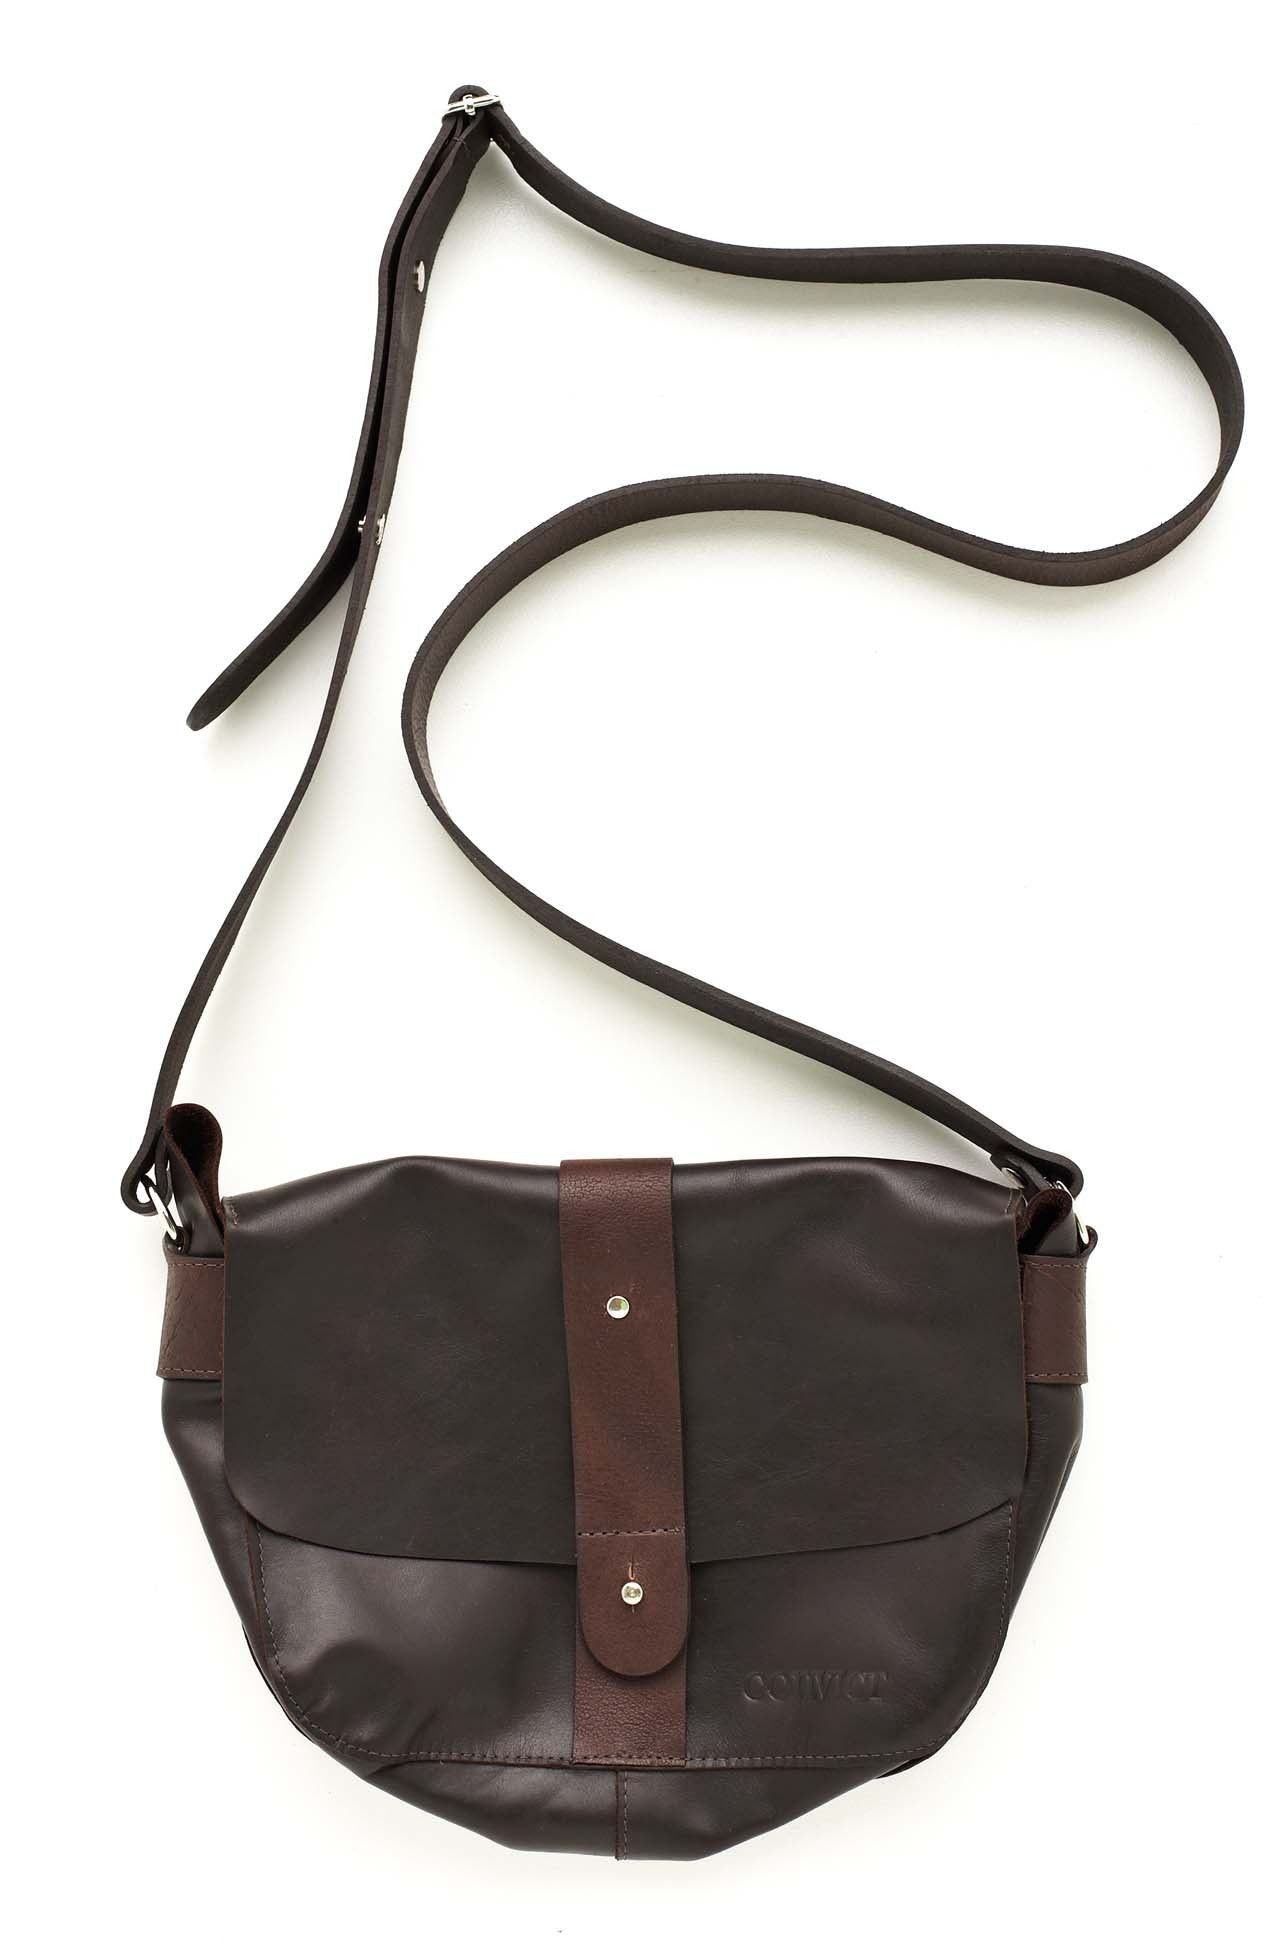 Convict Betsey satchel, Dark brown leather, australian made